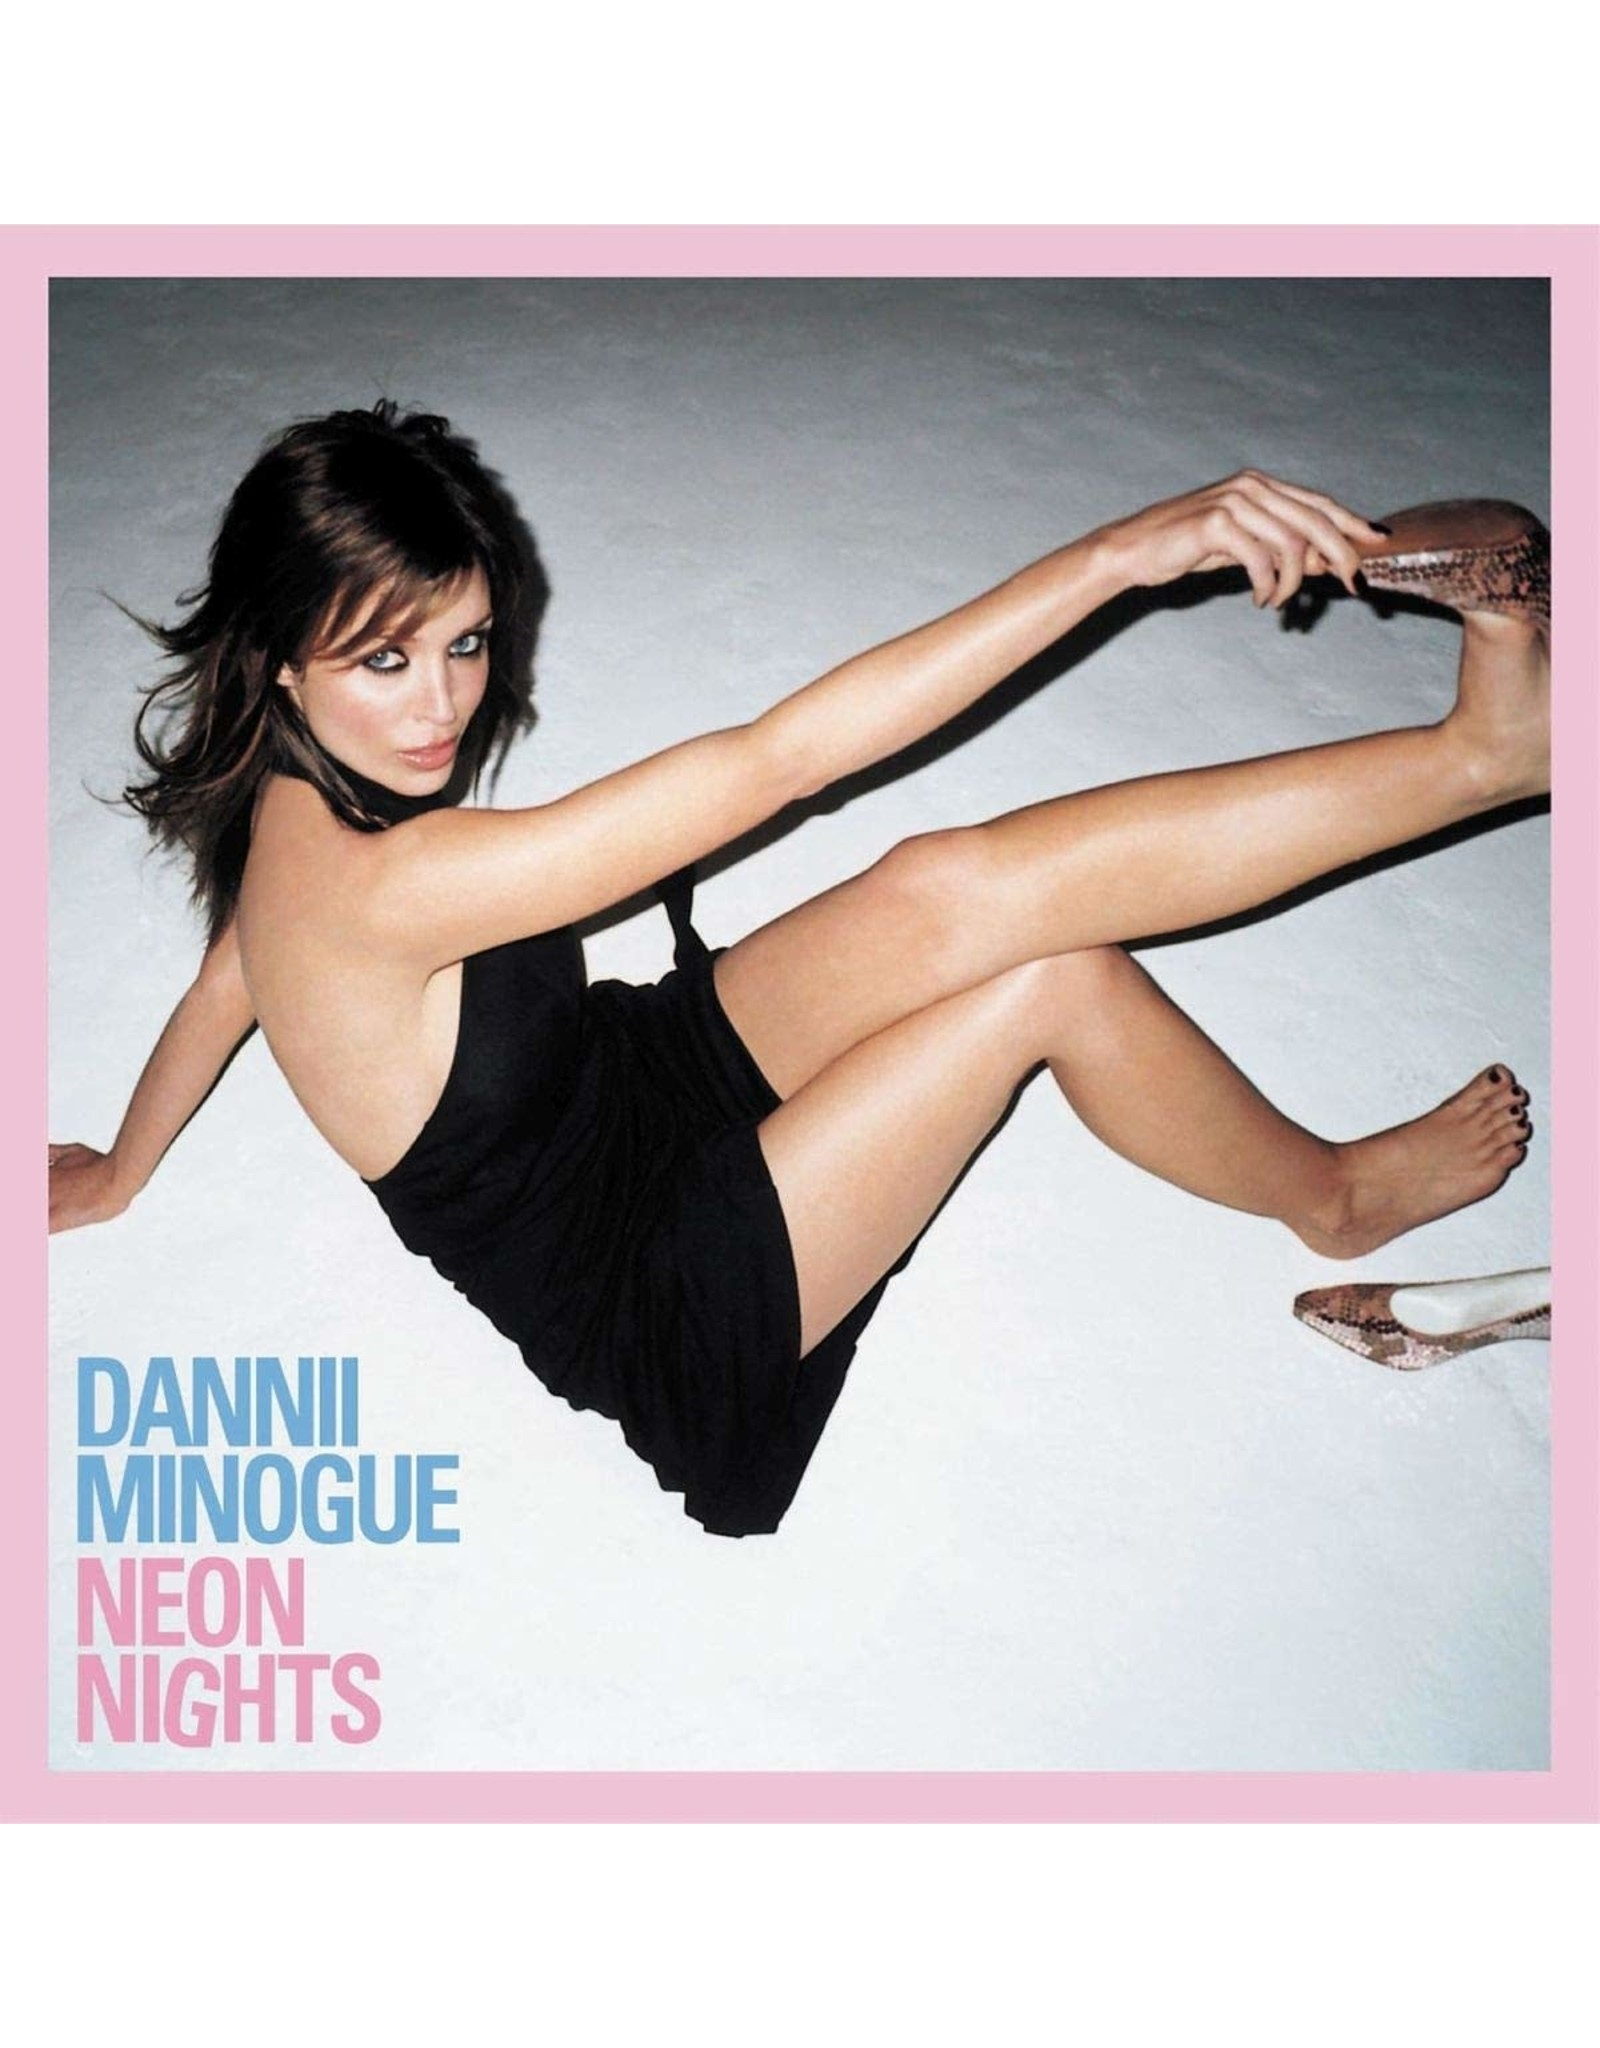 Dannii Minogue - Neon Nights (15th Anniversary)